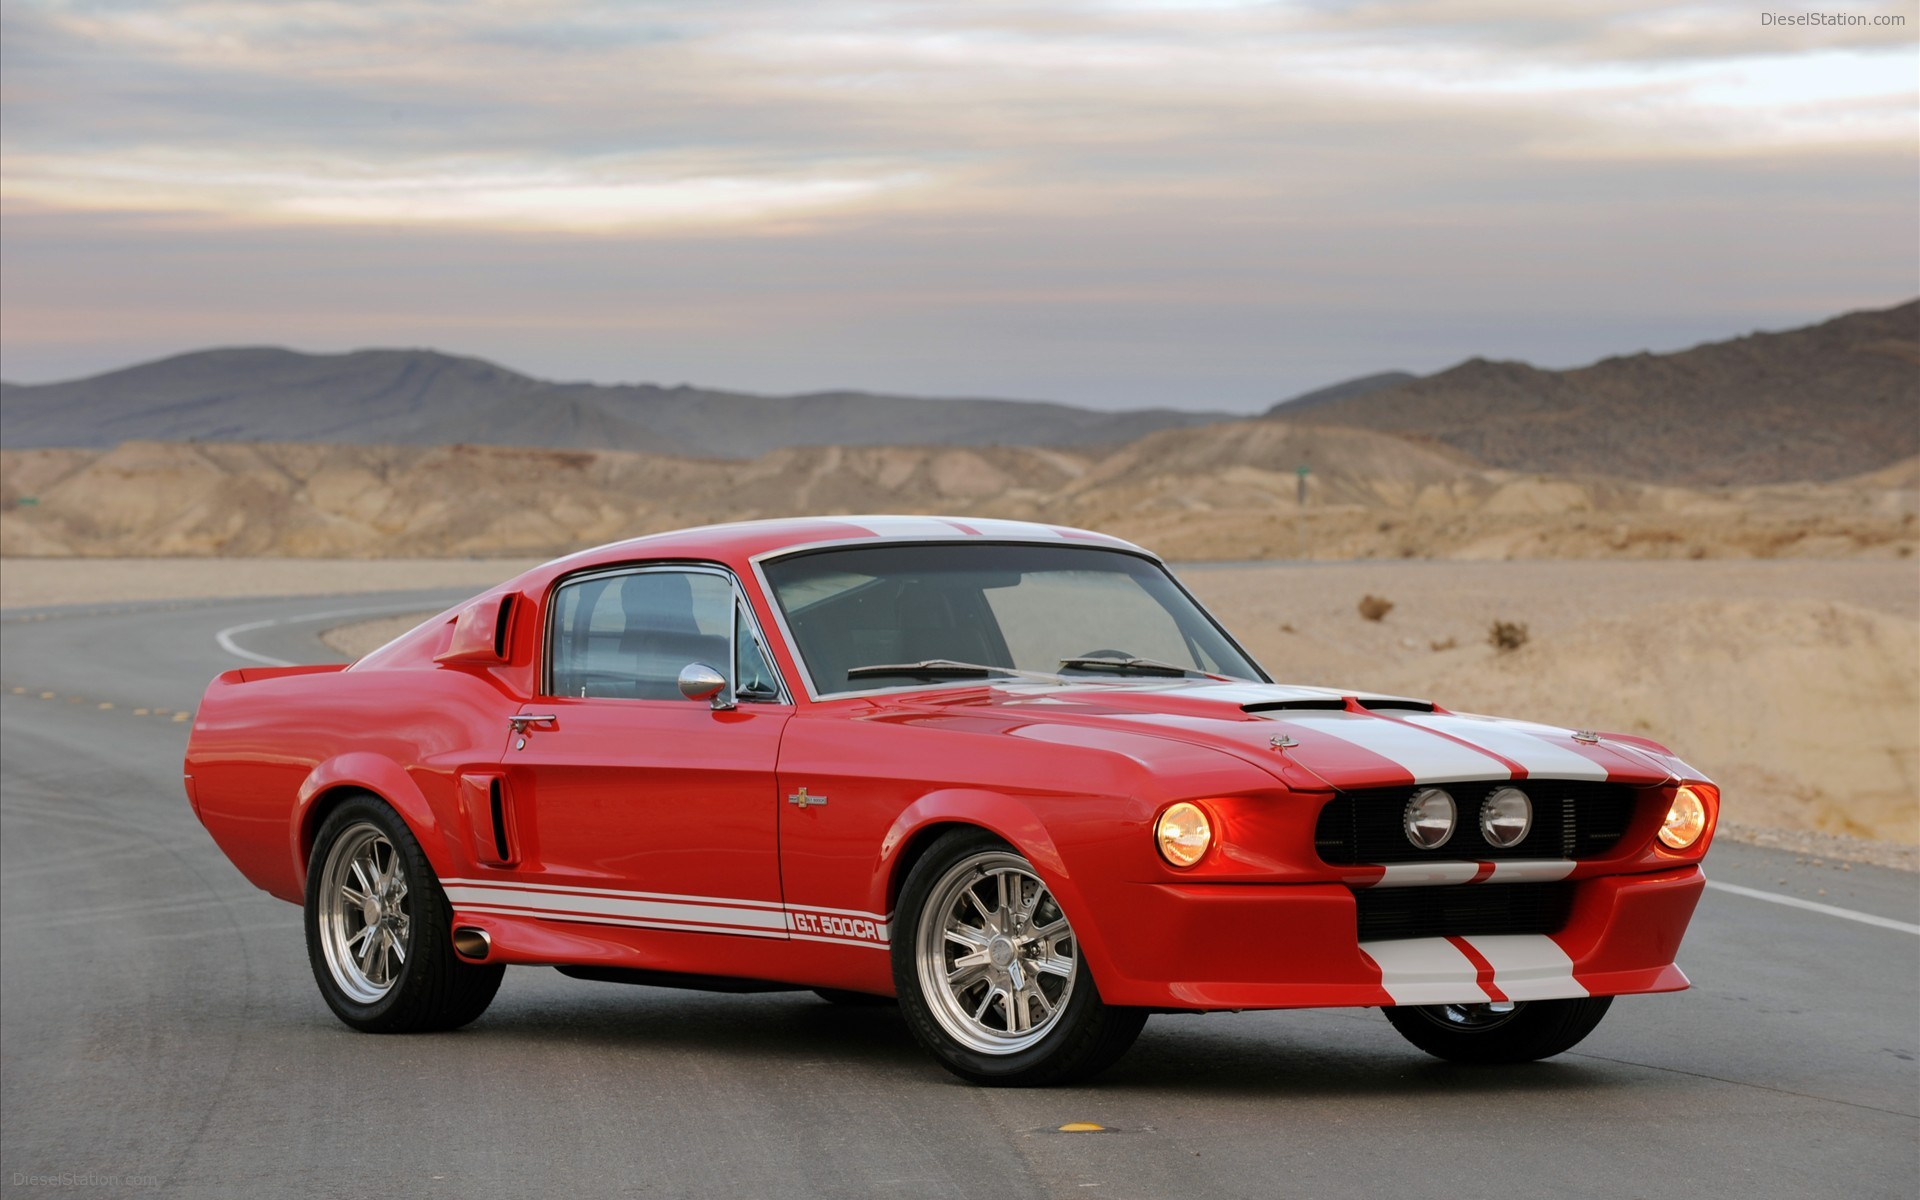 44+ 1967 Shelby Mustang Wallpaper on WallpaperSafari